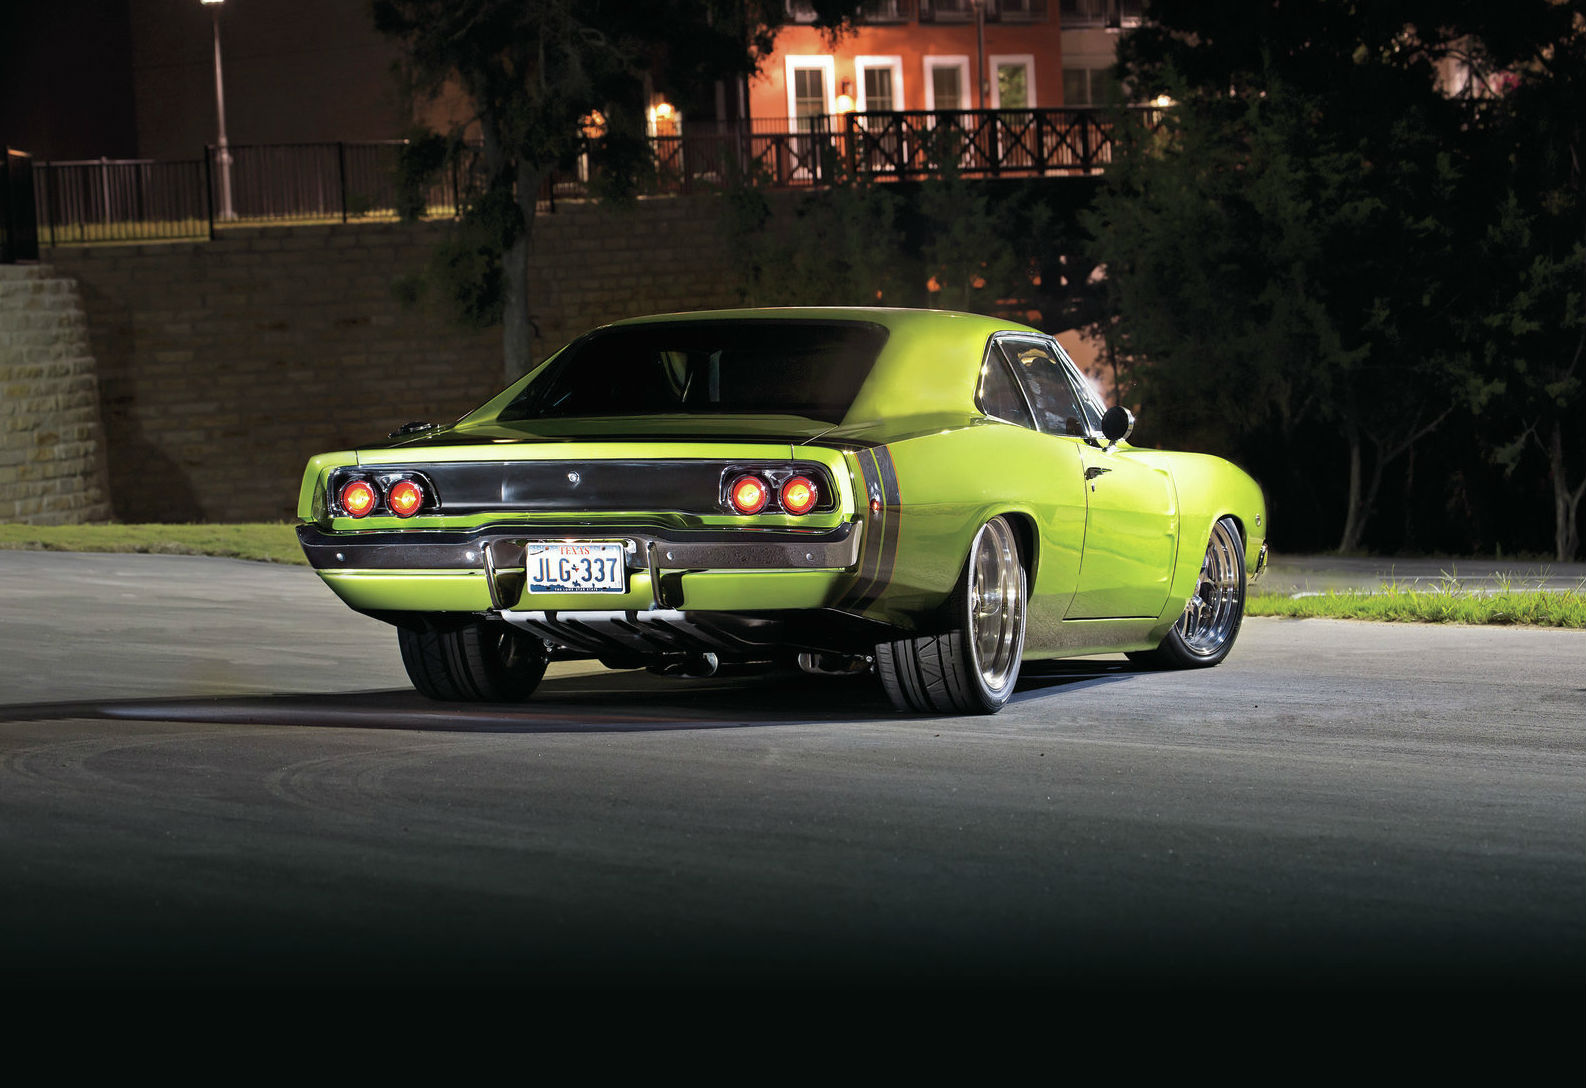 1968 Dodge Charger Rear View Muscle Cars Zone